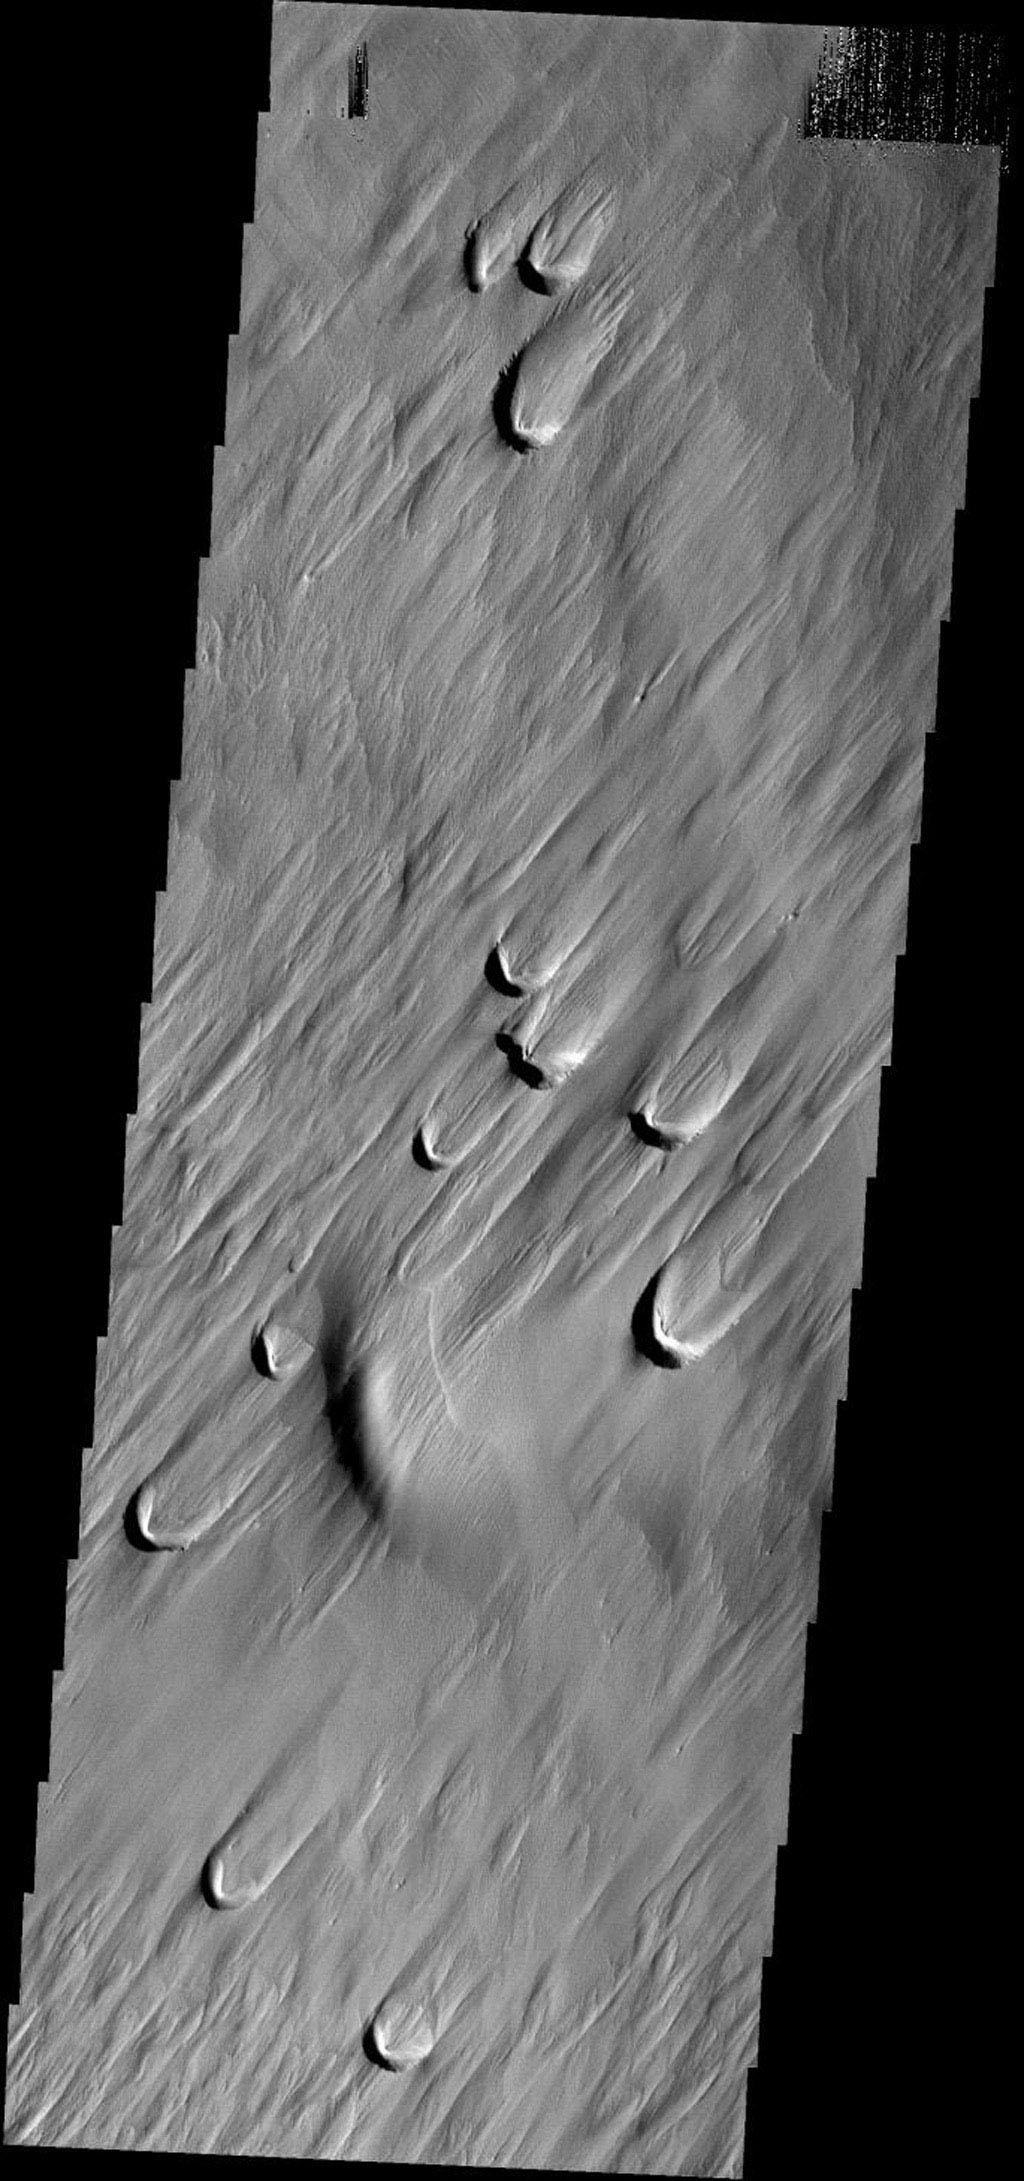 The dark crescents in this image from NASA's Mars Odyssey spacecraft are the backside of wind blowout features. Blowouts are common on Earth in beach regions and in the American MidWest.